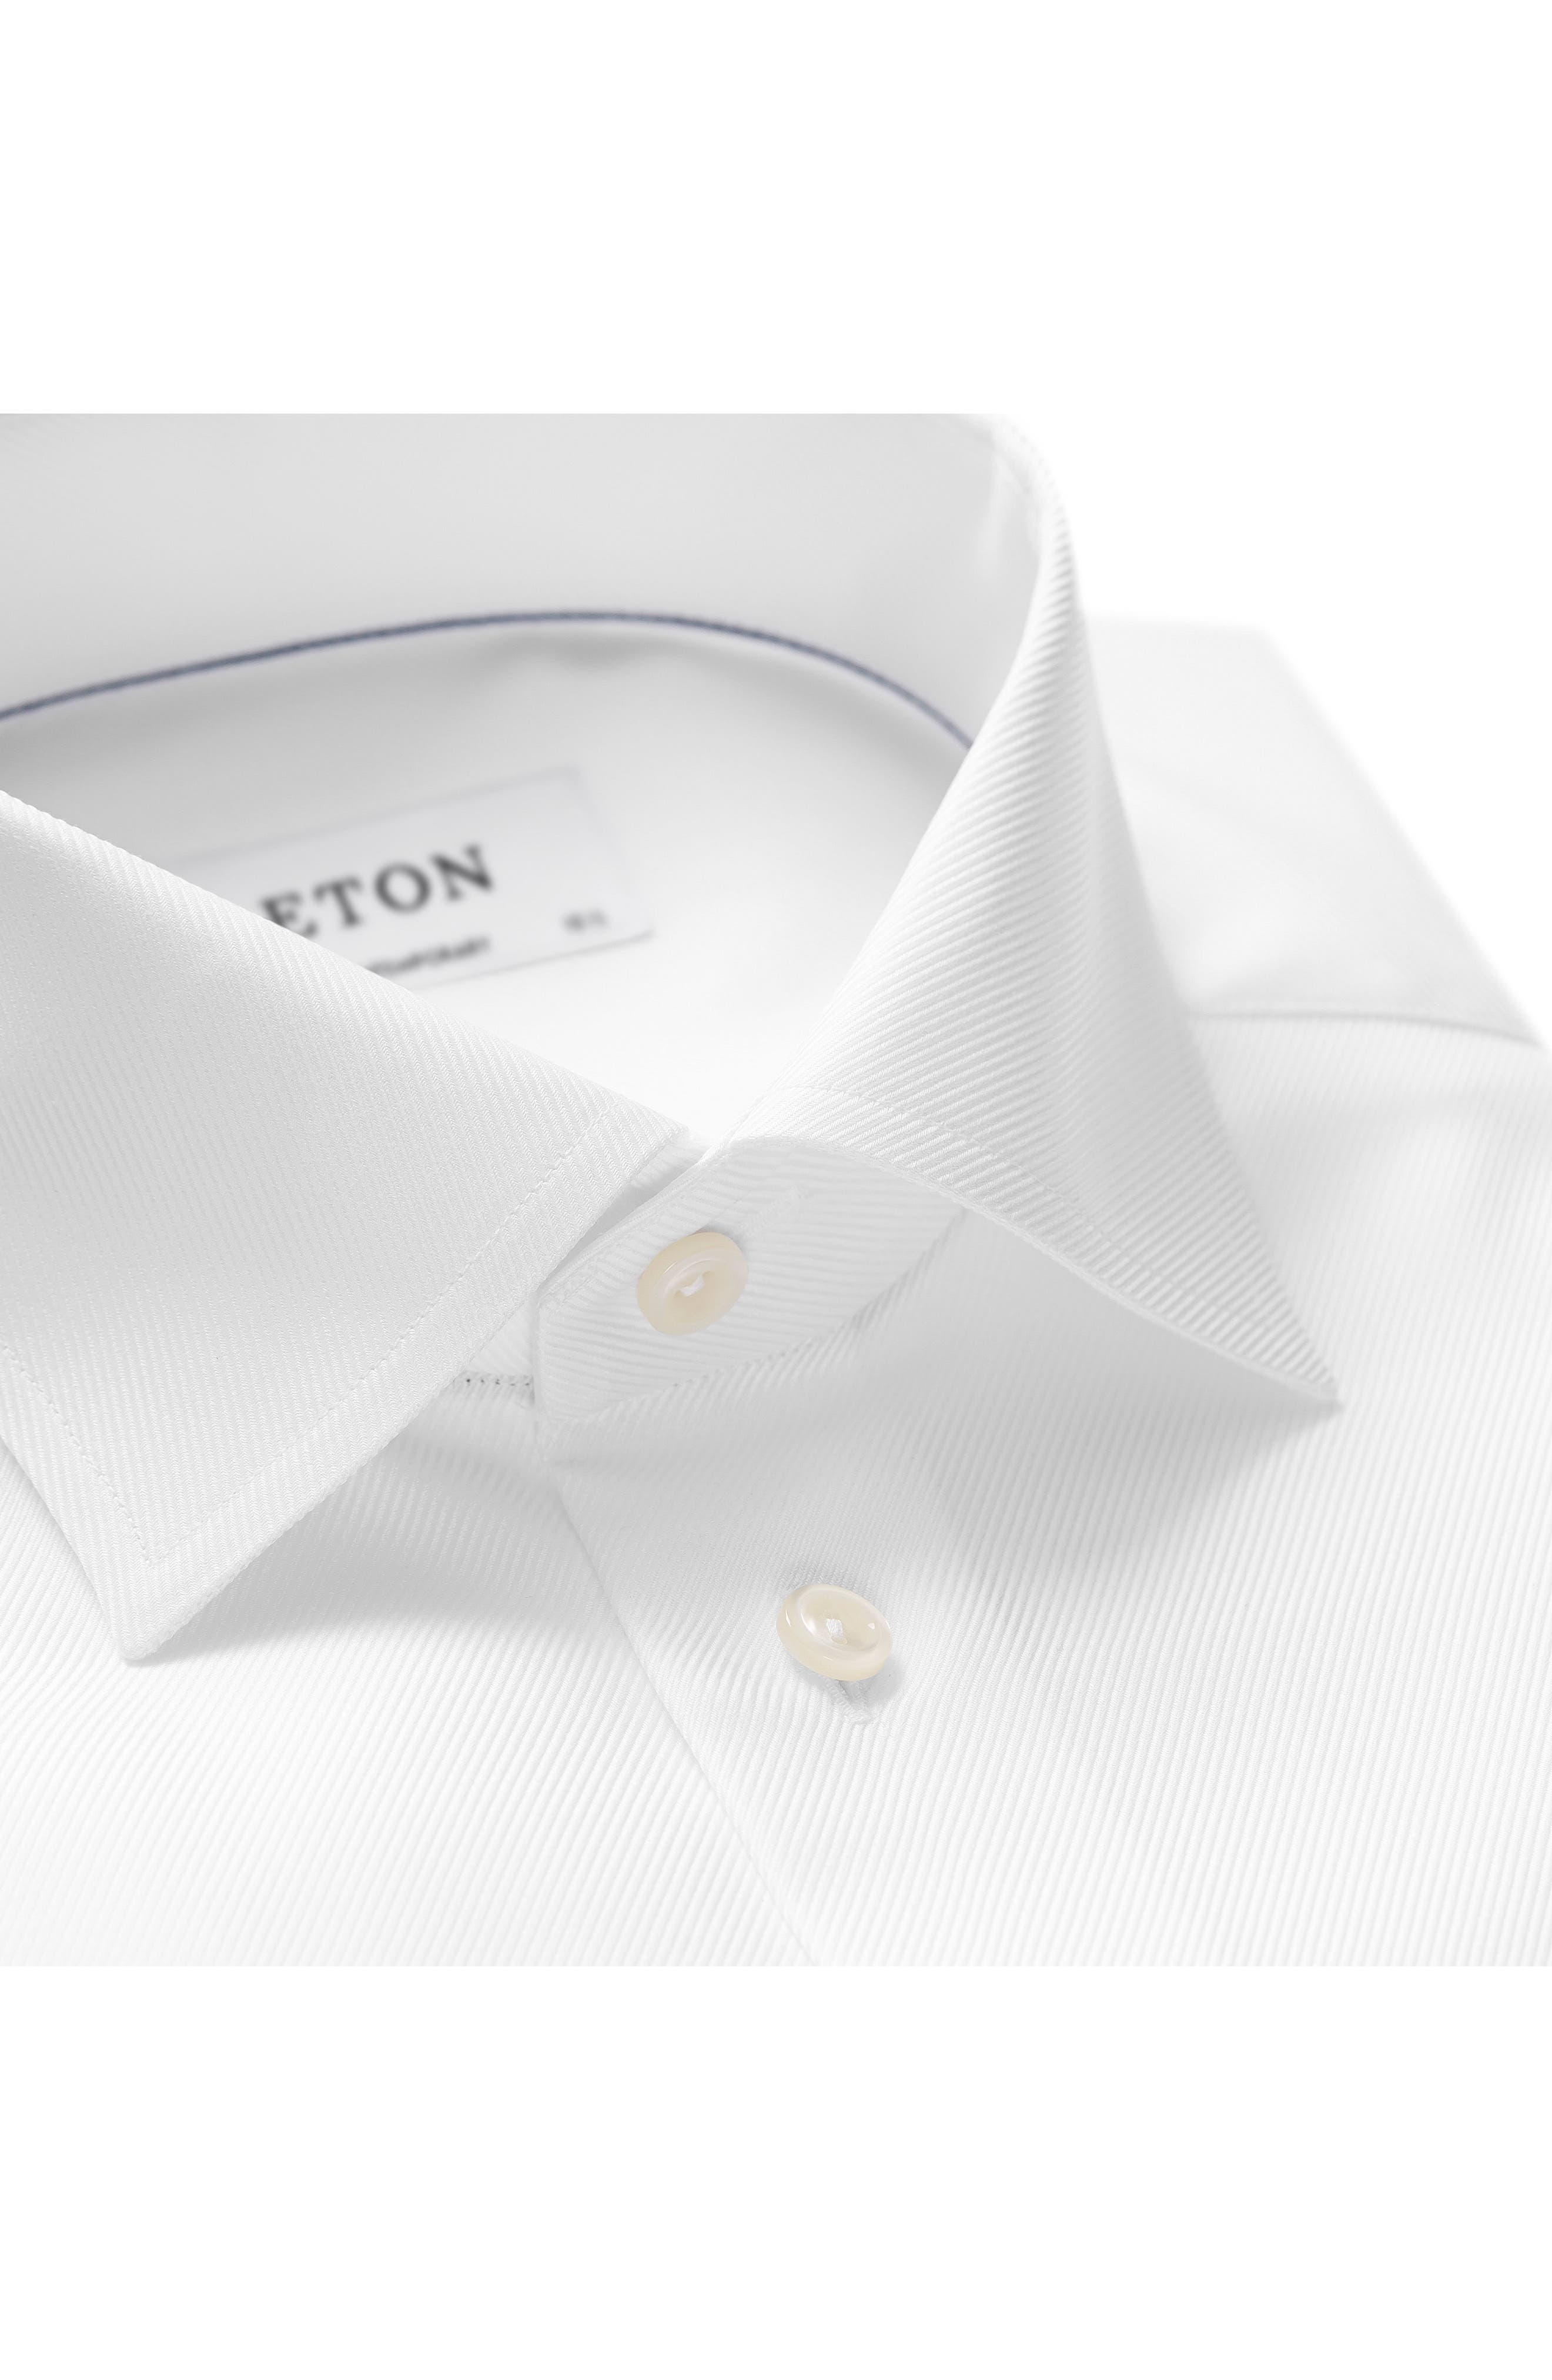 Contemporary Fit Cavalry Twill Dress Shirt,                             Alternate thumbnail 3, color,                             WHITE